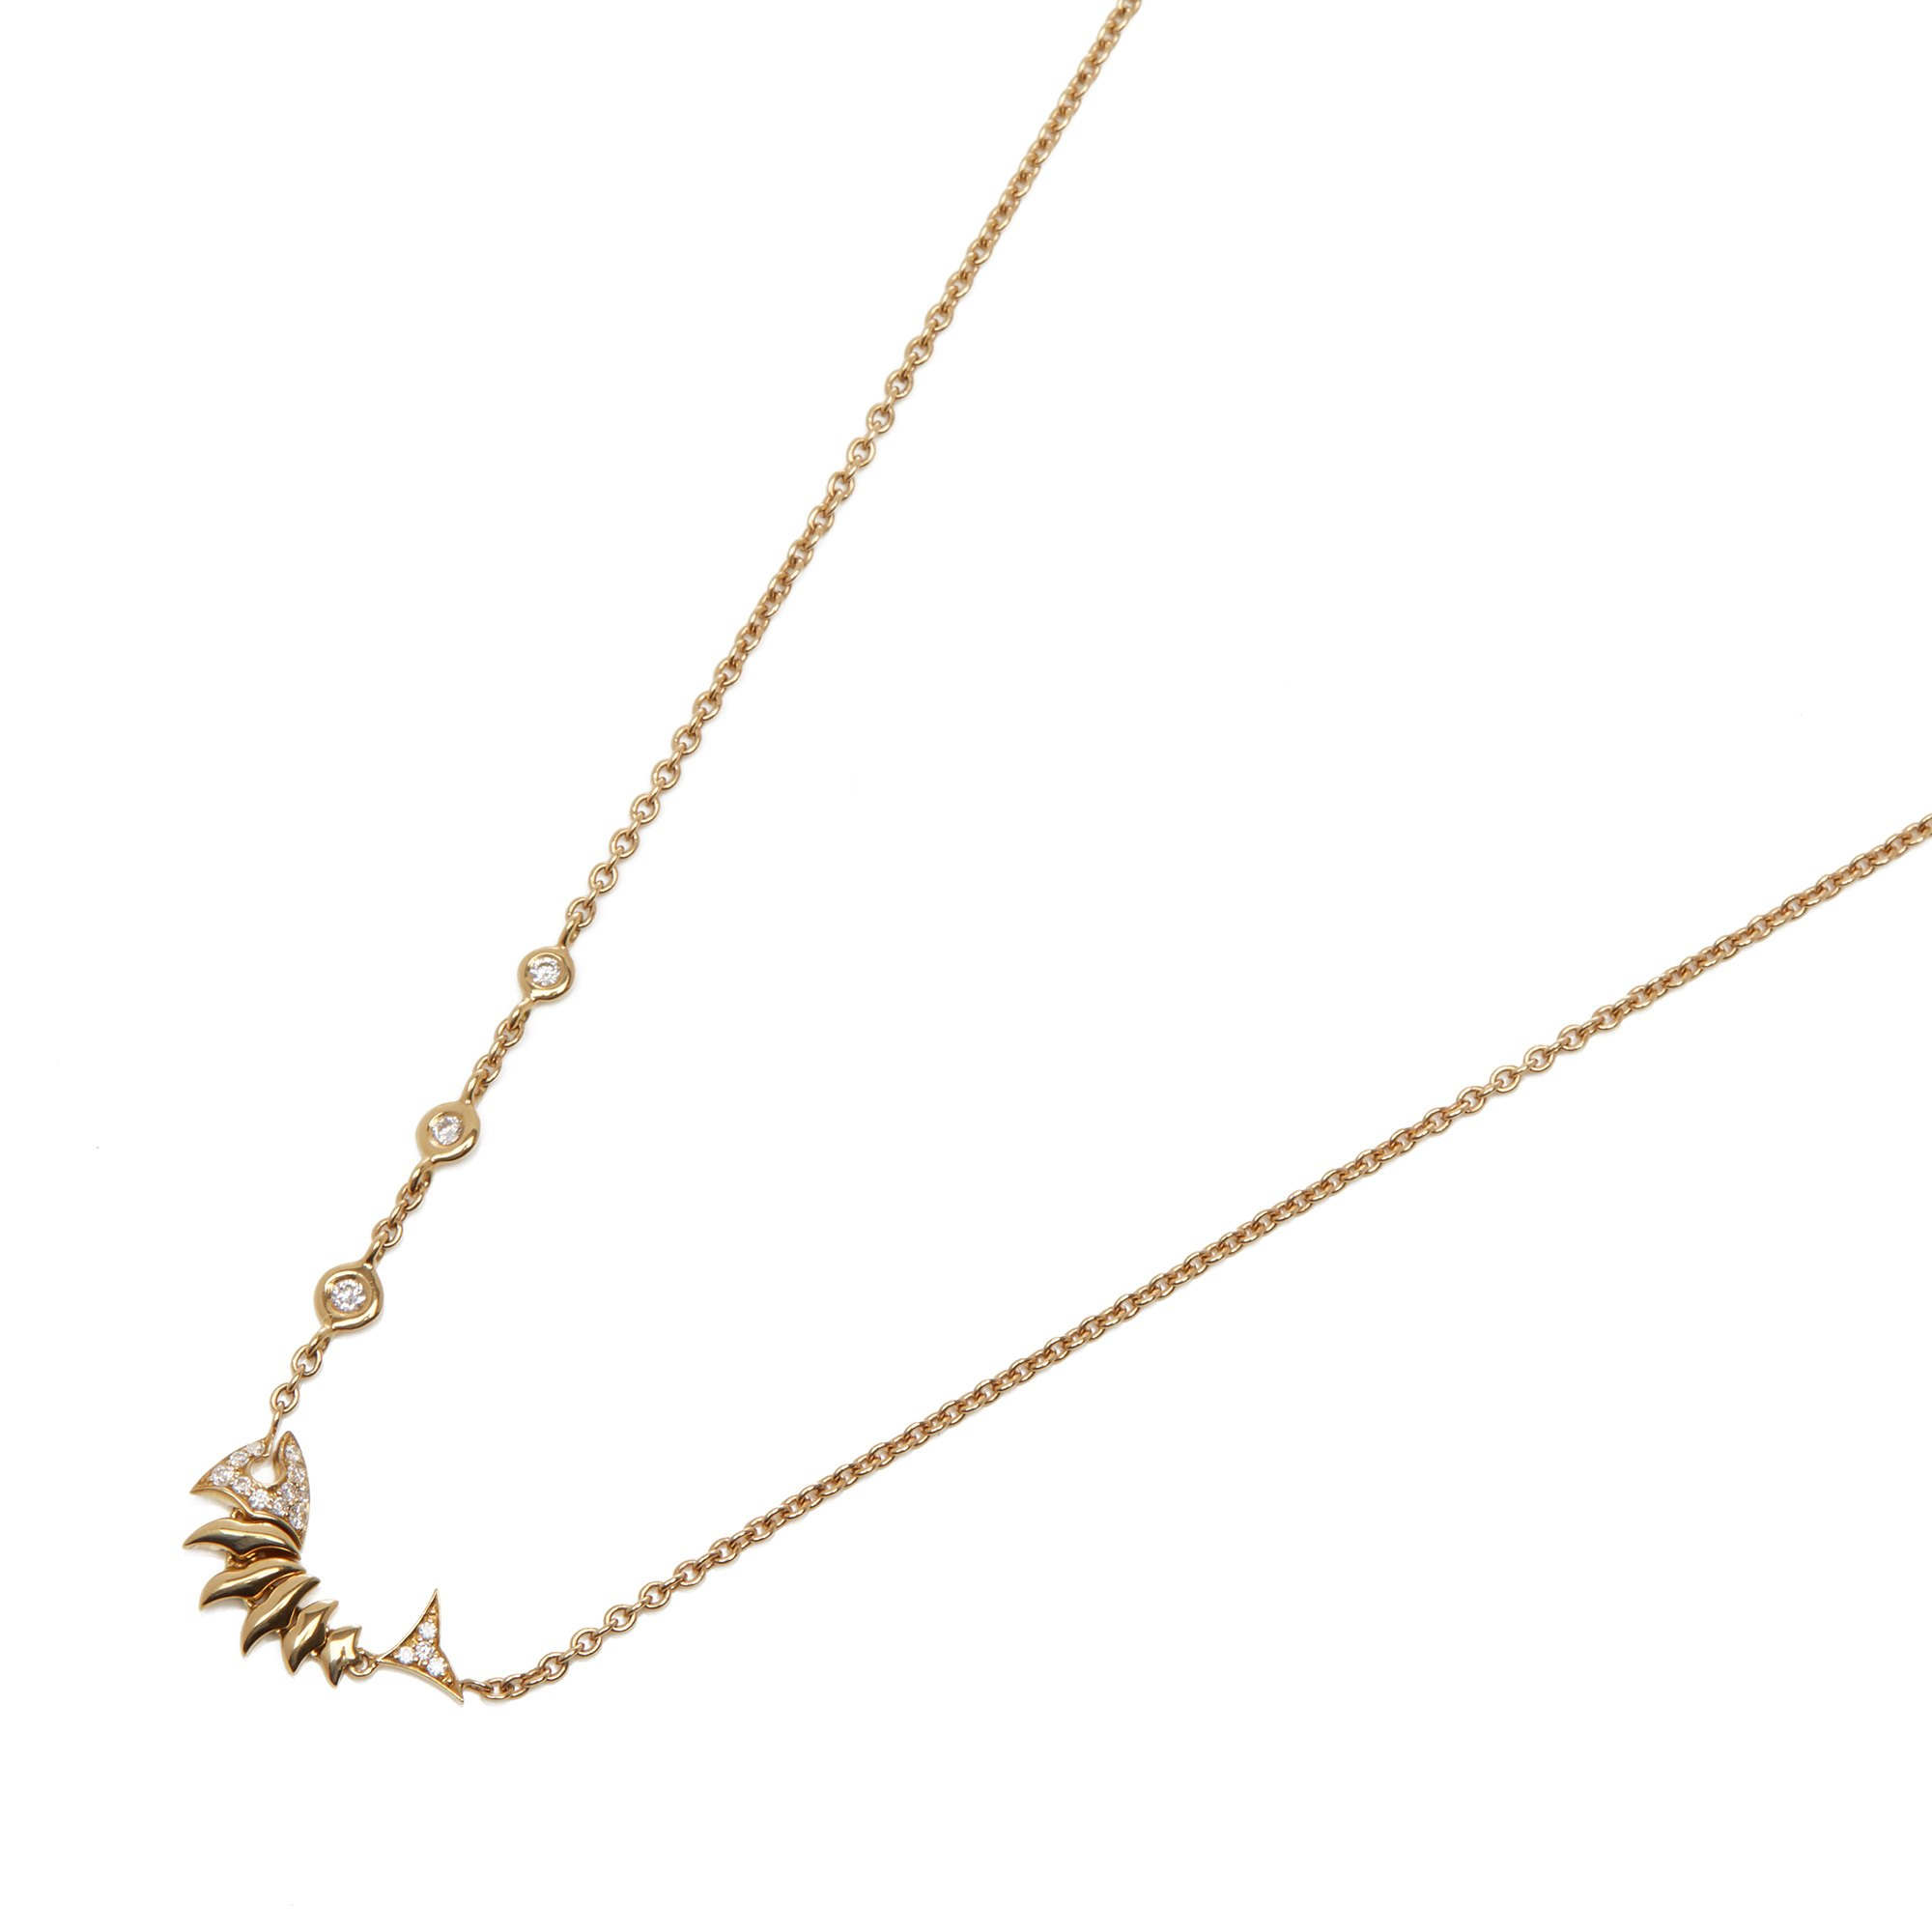 Stephen Webster Jewels Verne 18ct Yellow Gold Diamond necklace